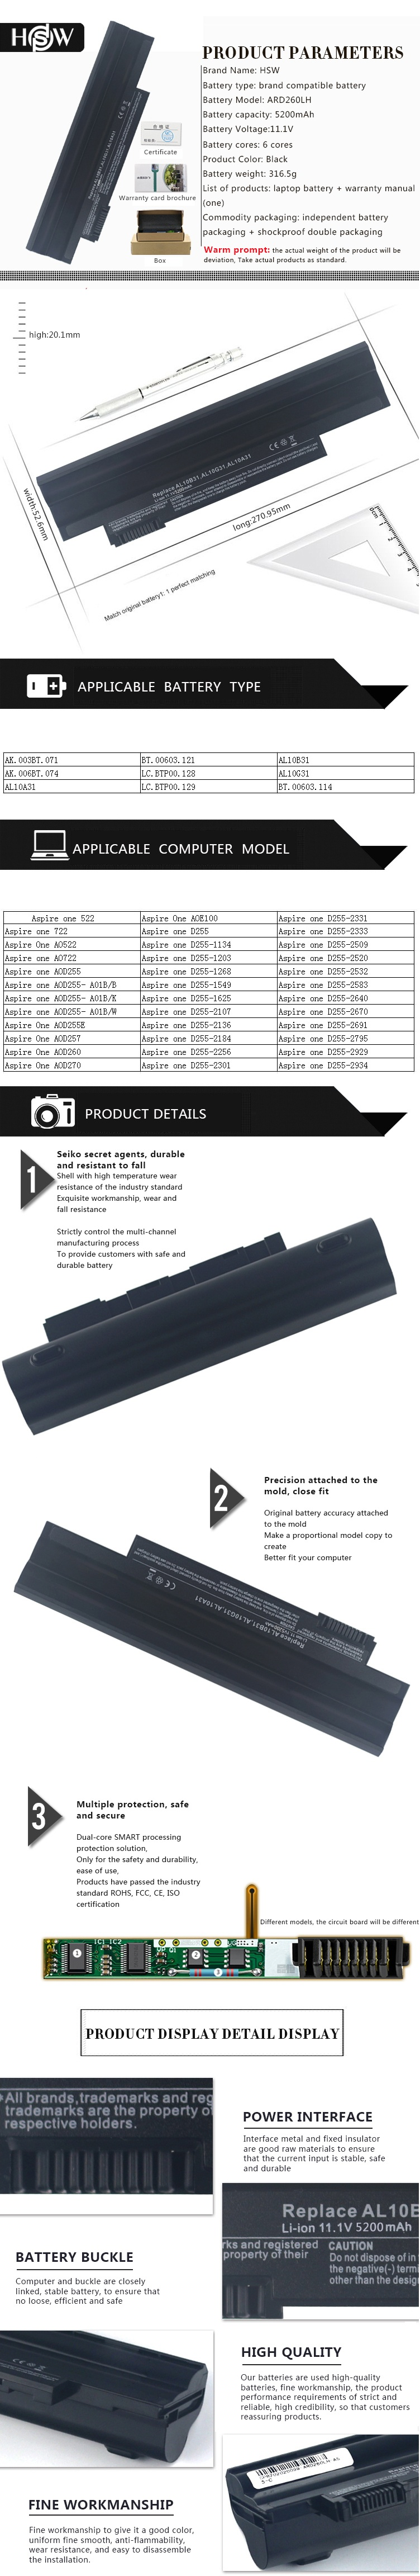 Baterai Acer Aspire One 522 722 D255 D255e D257 Happy D260 D270e100 2 D270 Putih Oem Hsw 6cells New Laptop Battery For